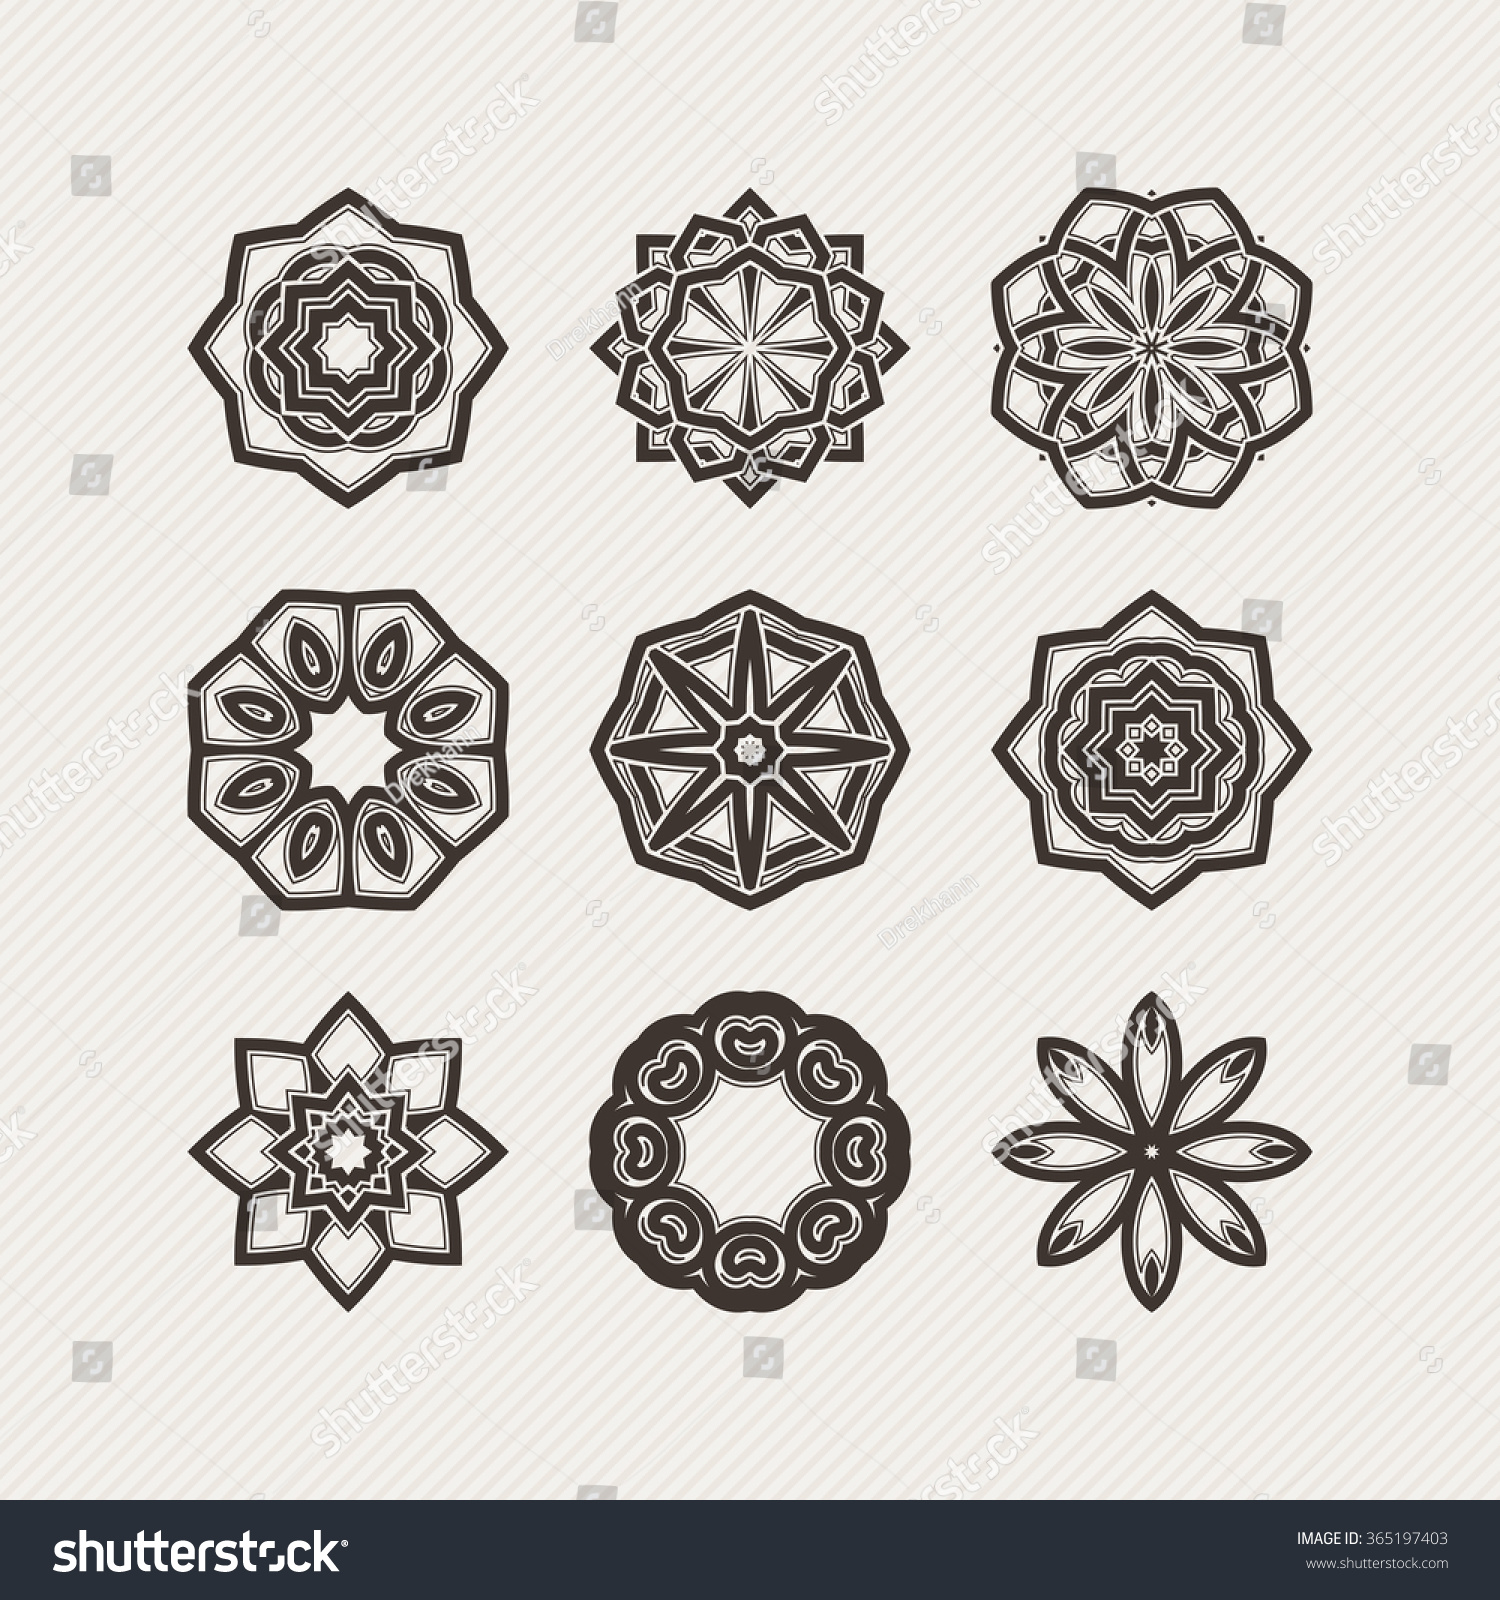 Set Ornate Vector Mandala Symbols Gothic Stock Vector. Hooked Stickers. Compter Logo. Village Murals. Recognition Signs Of Stroke. Truck Tailgate Stickers. White Beard Stickers. Aliexpress Decals. Spoon Signs